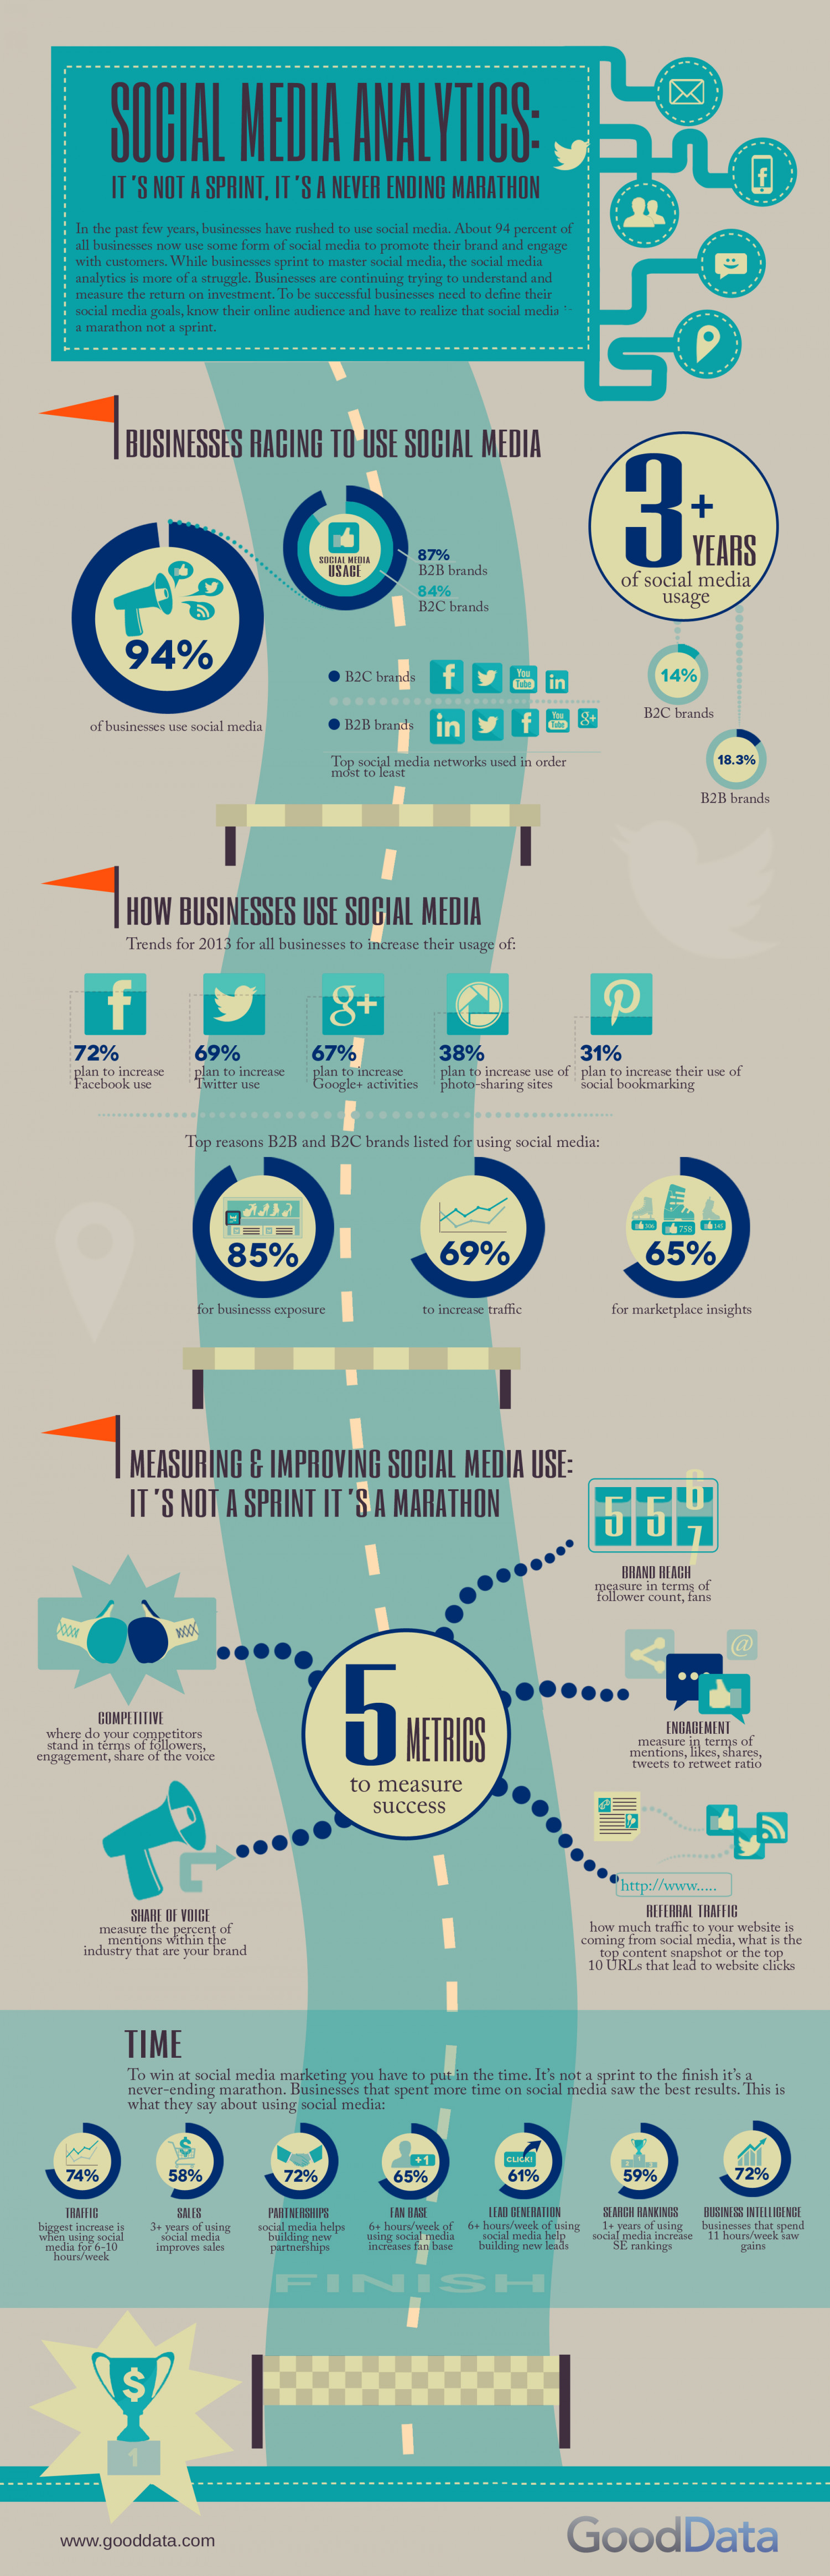 Social Media Analytics Infographic